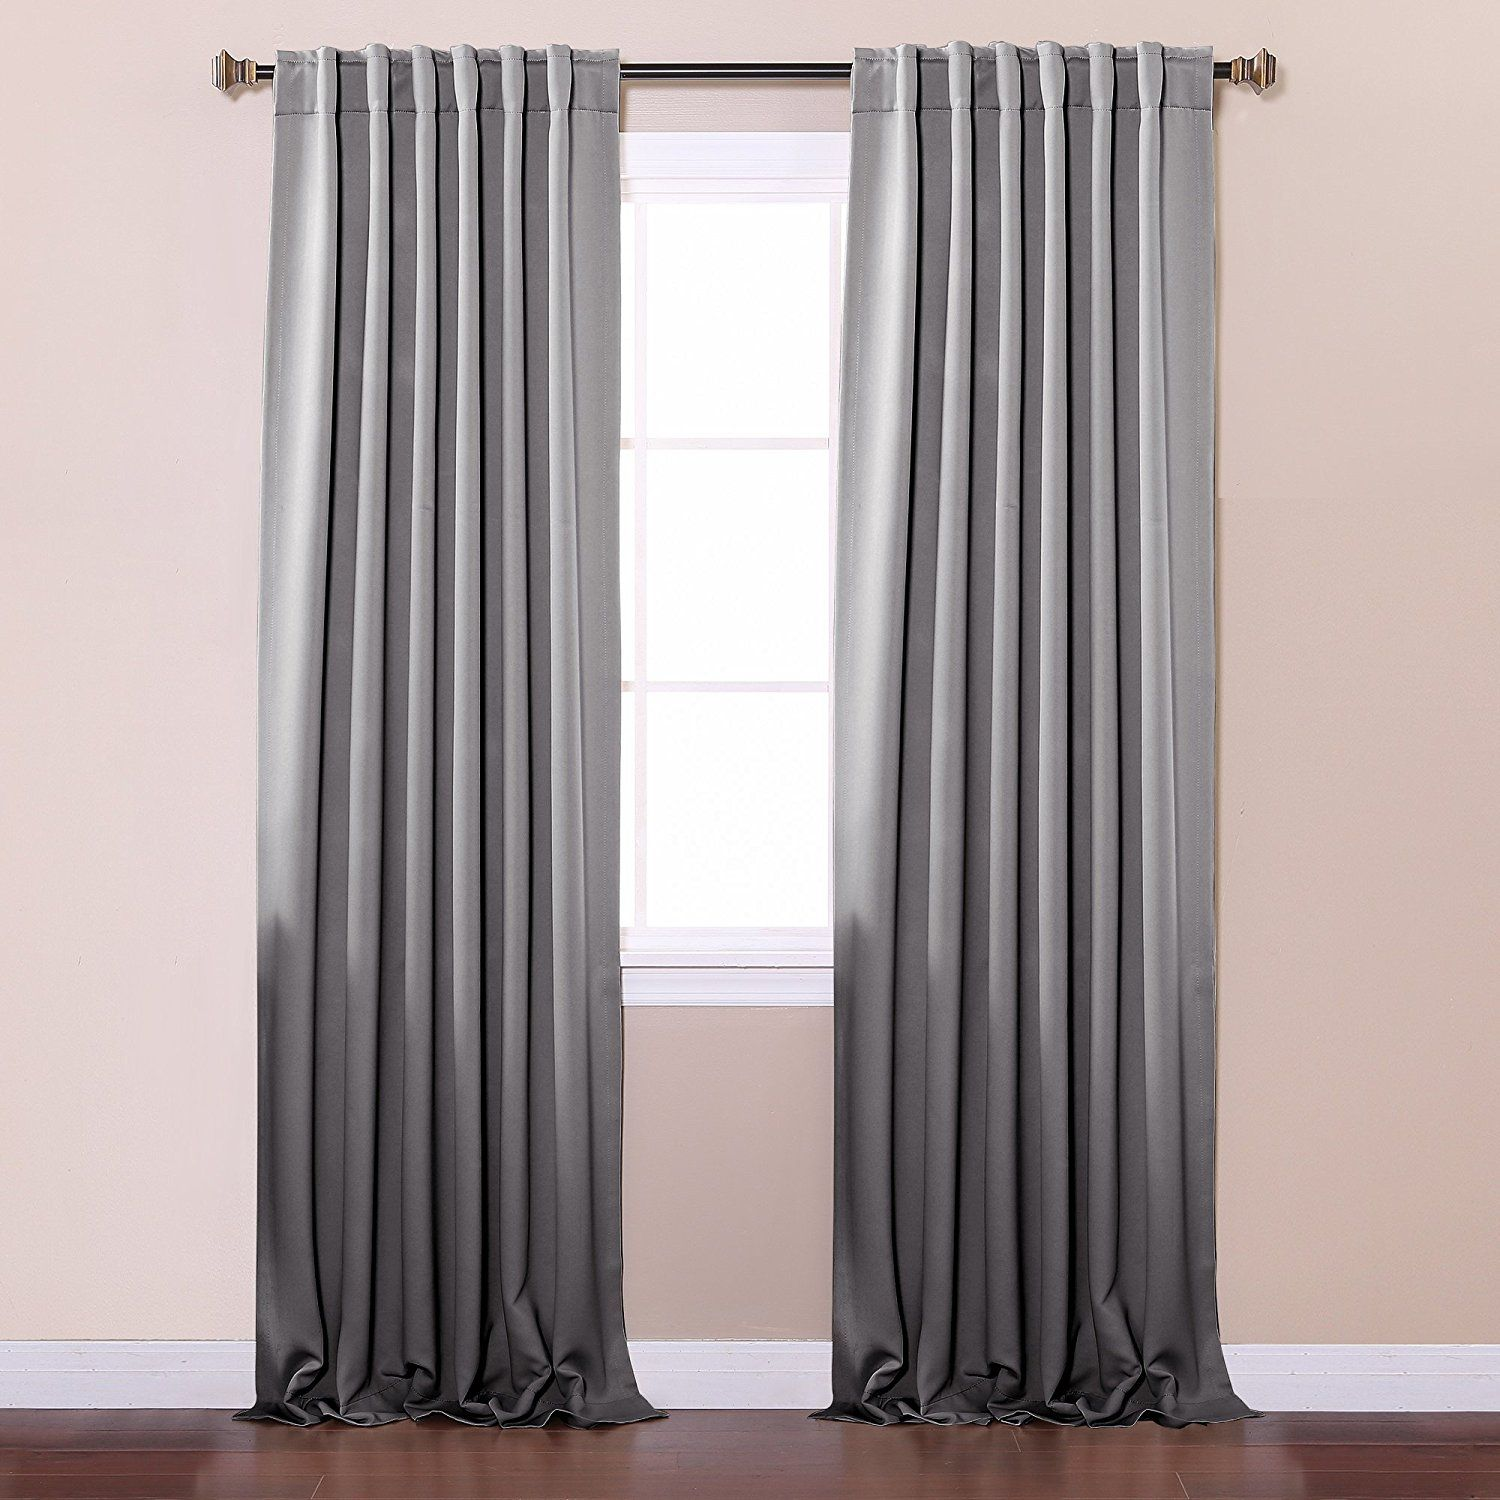 panel deconovo thermal com tie blackout amazon rod size curtain image insulated full up surprising nicetown alibaba design of insulatedkout curtains pocket burgundy grommet